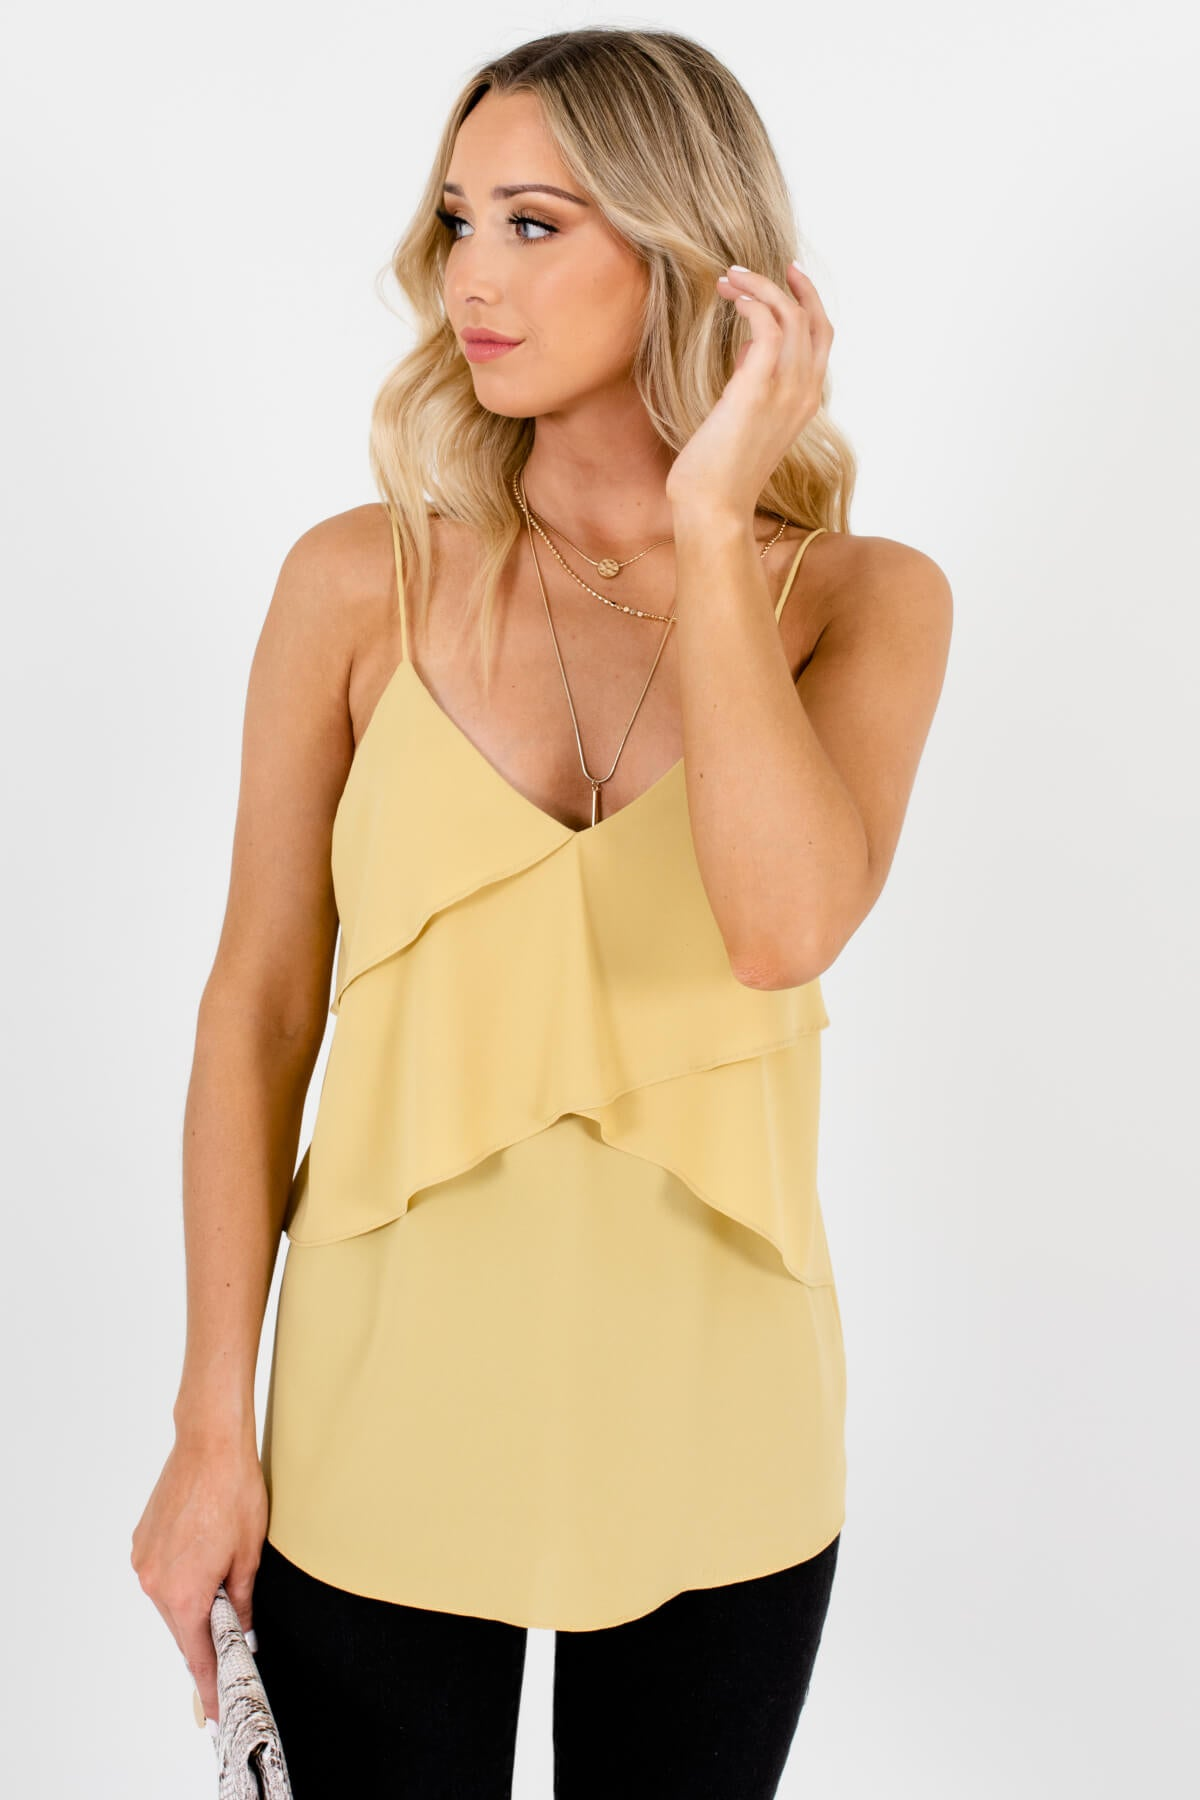 Yellow Ruffled Bodice Boutique Tank Tops for Women